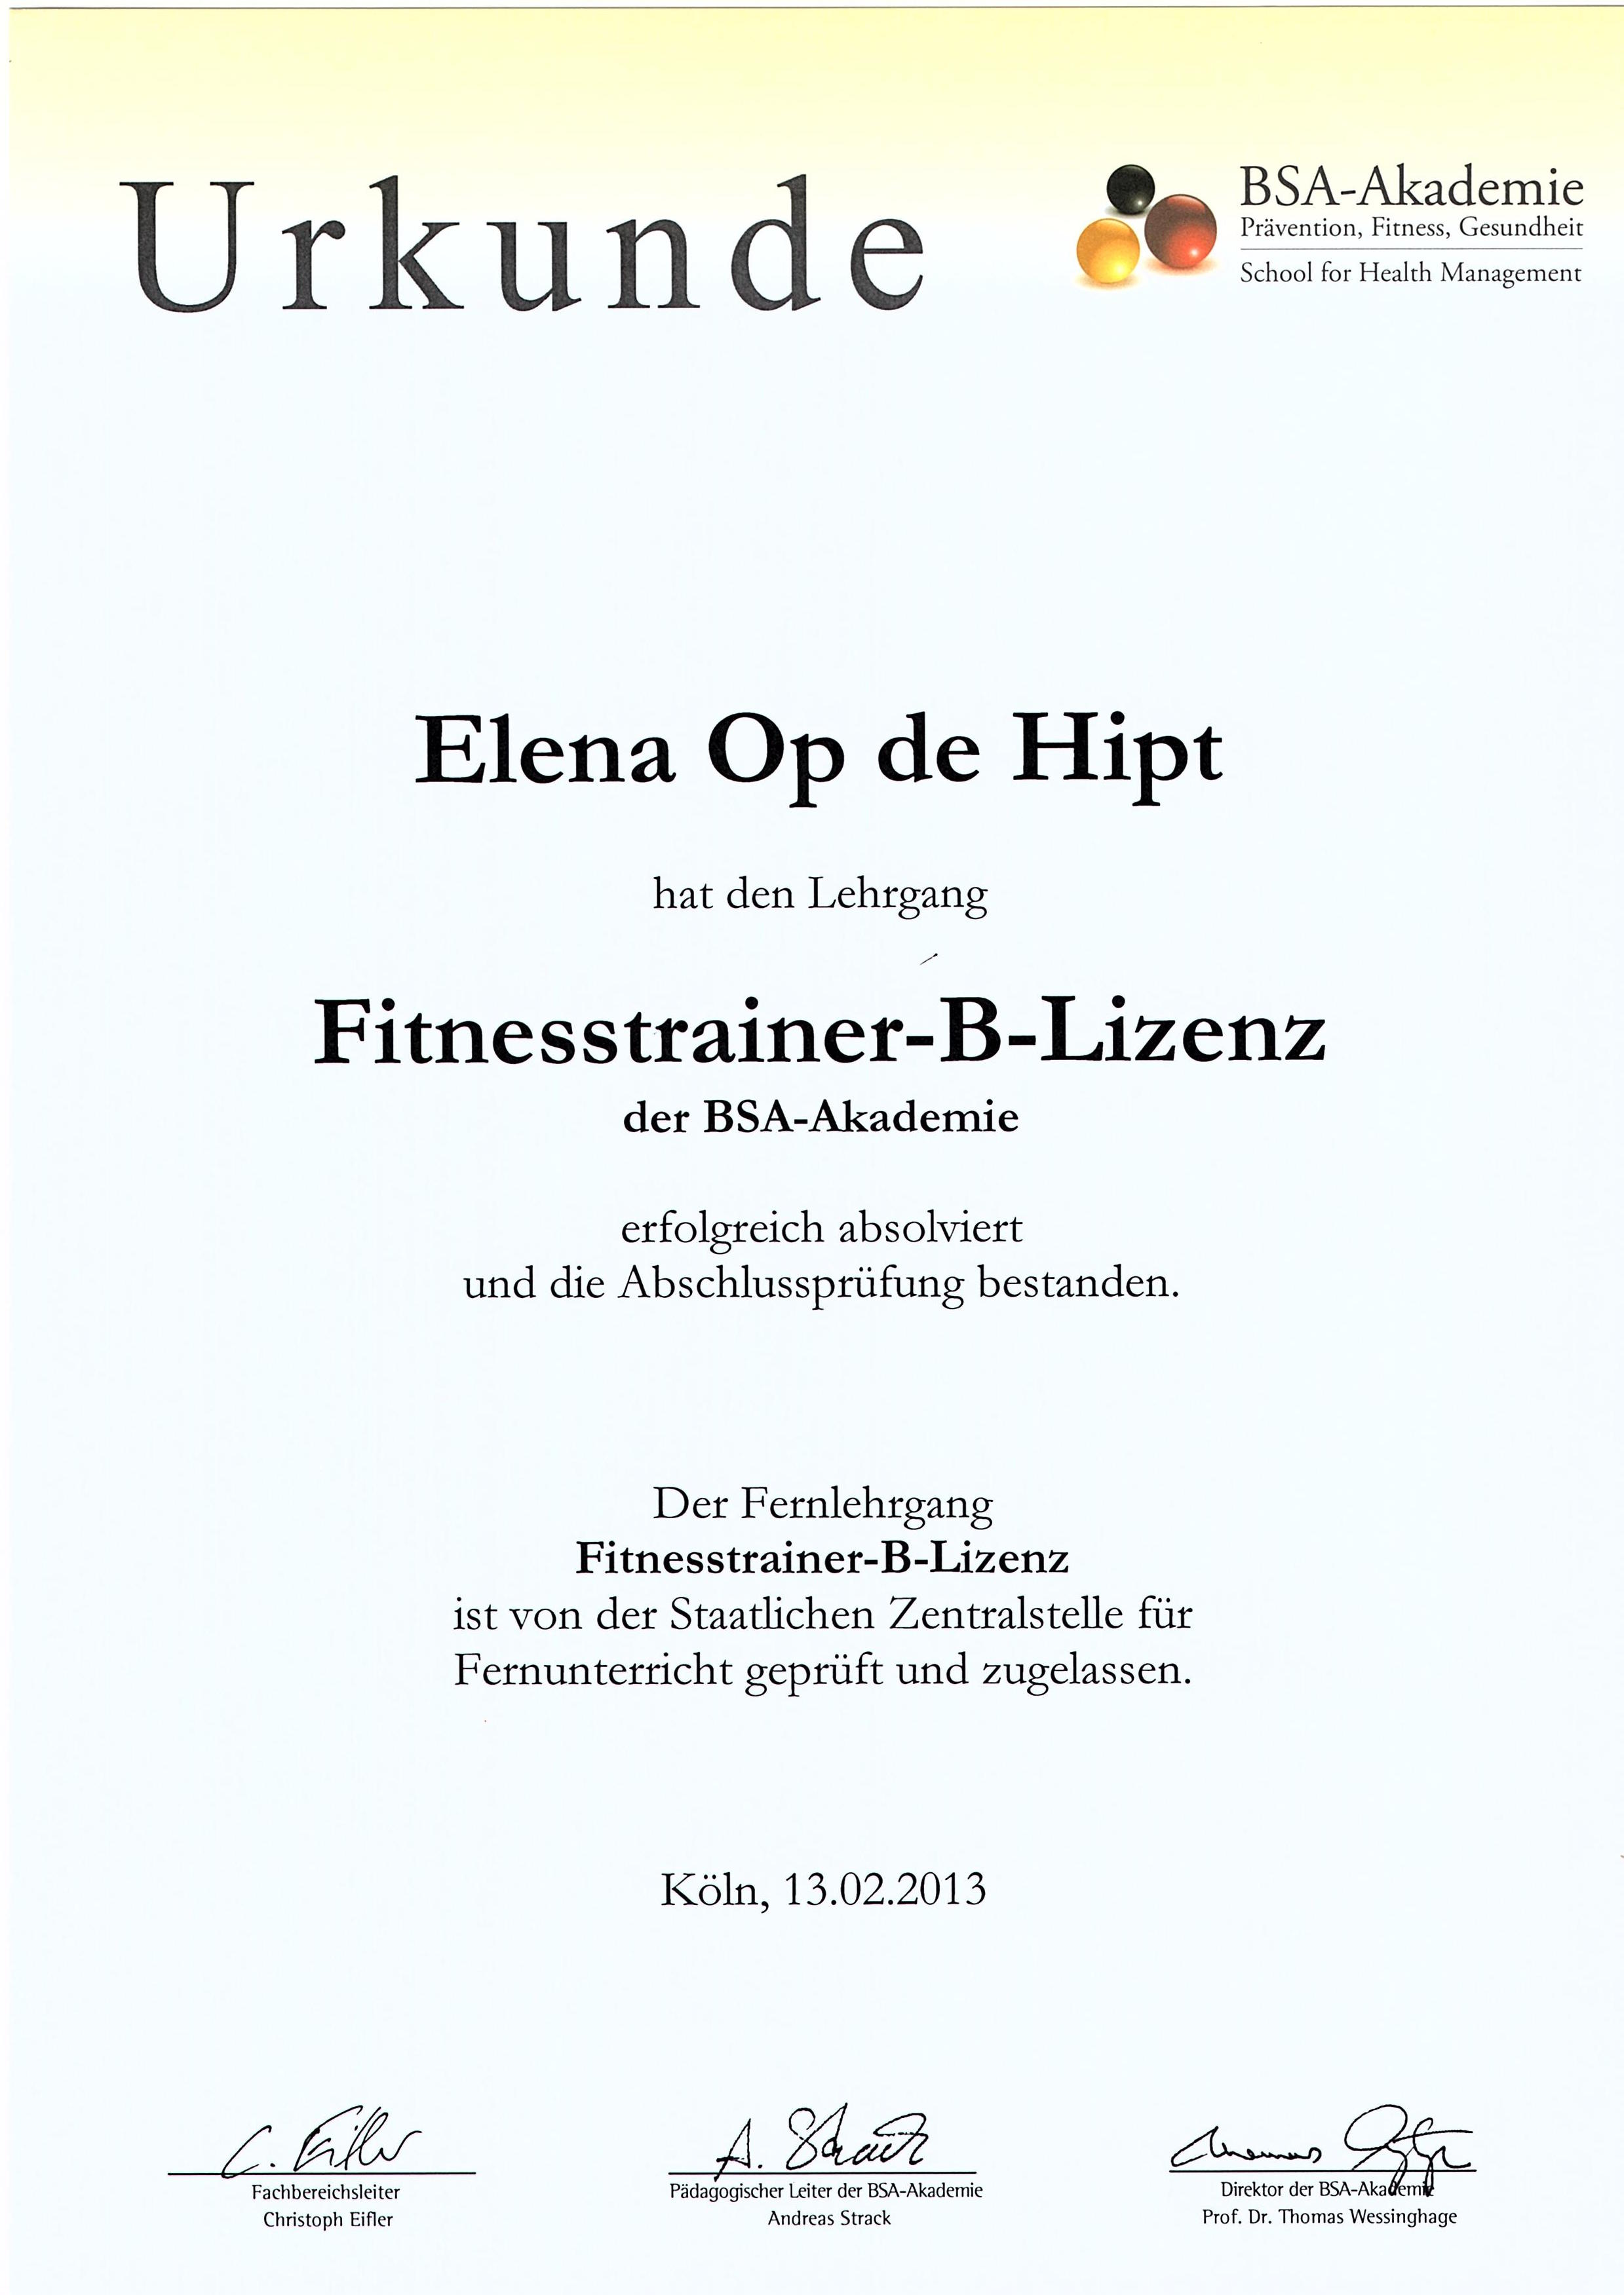 Fitness trainer B-License